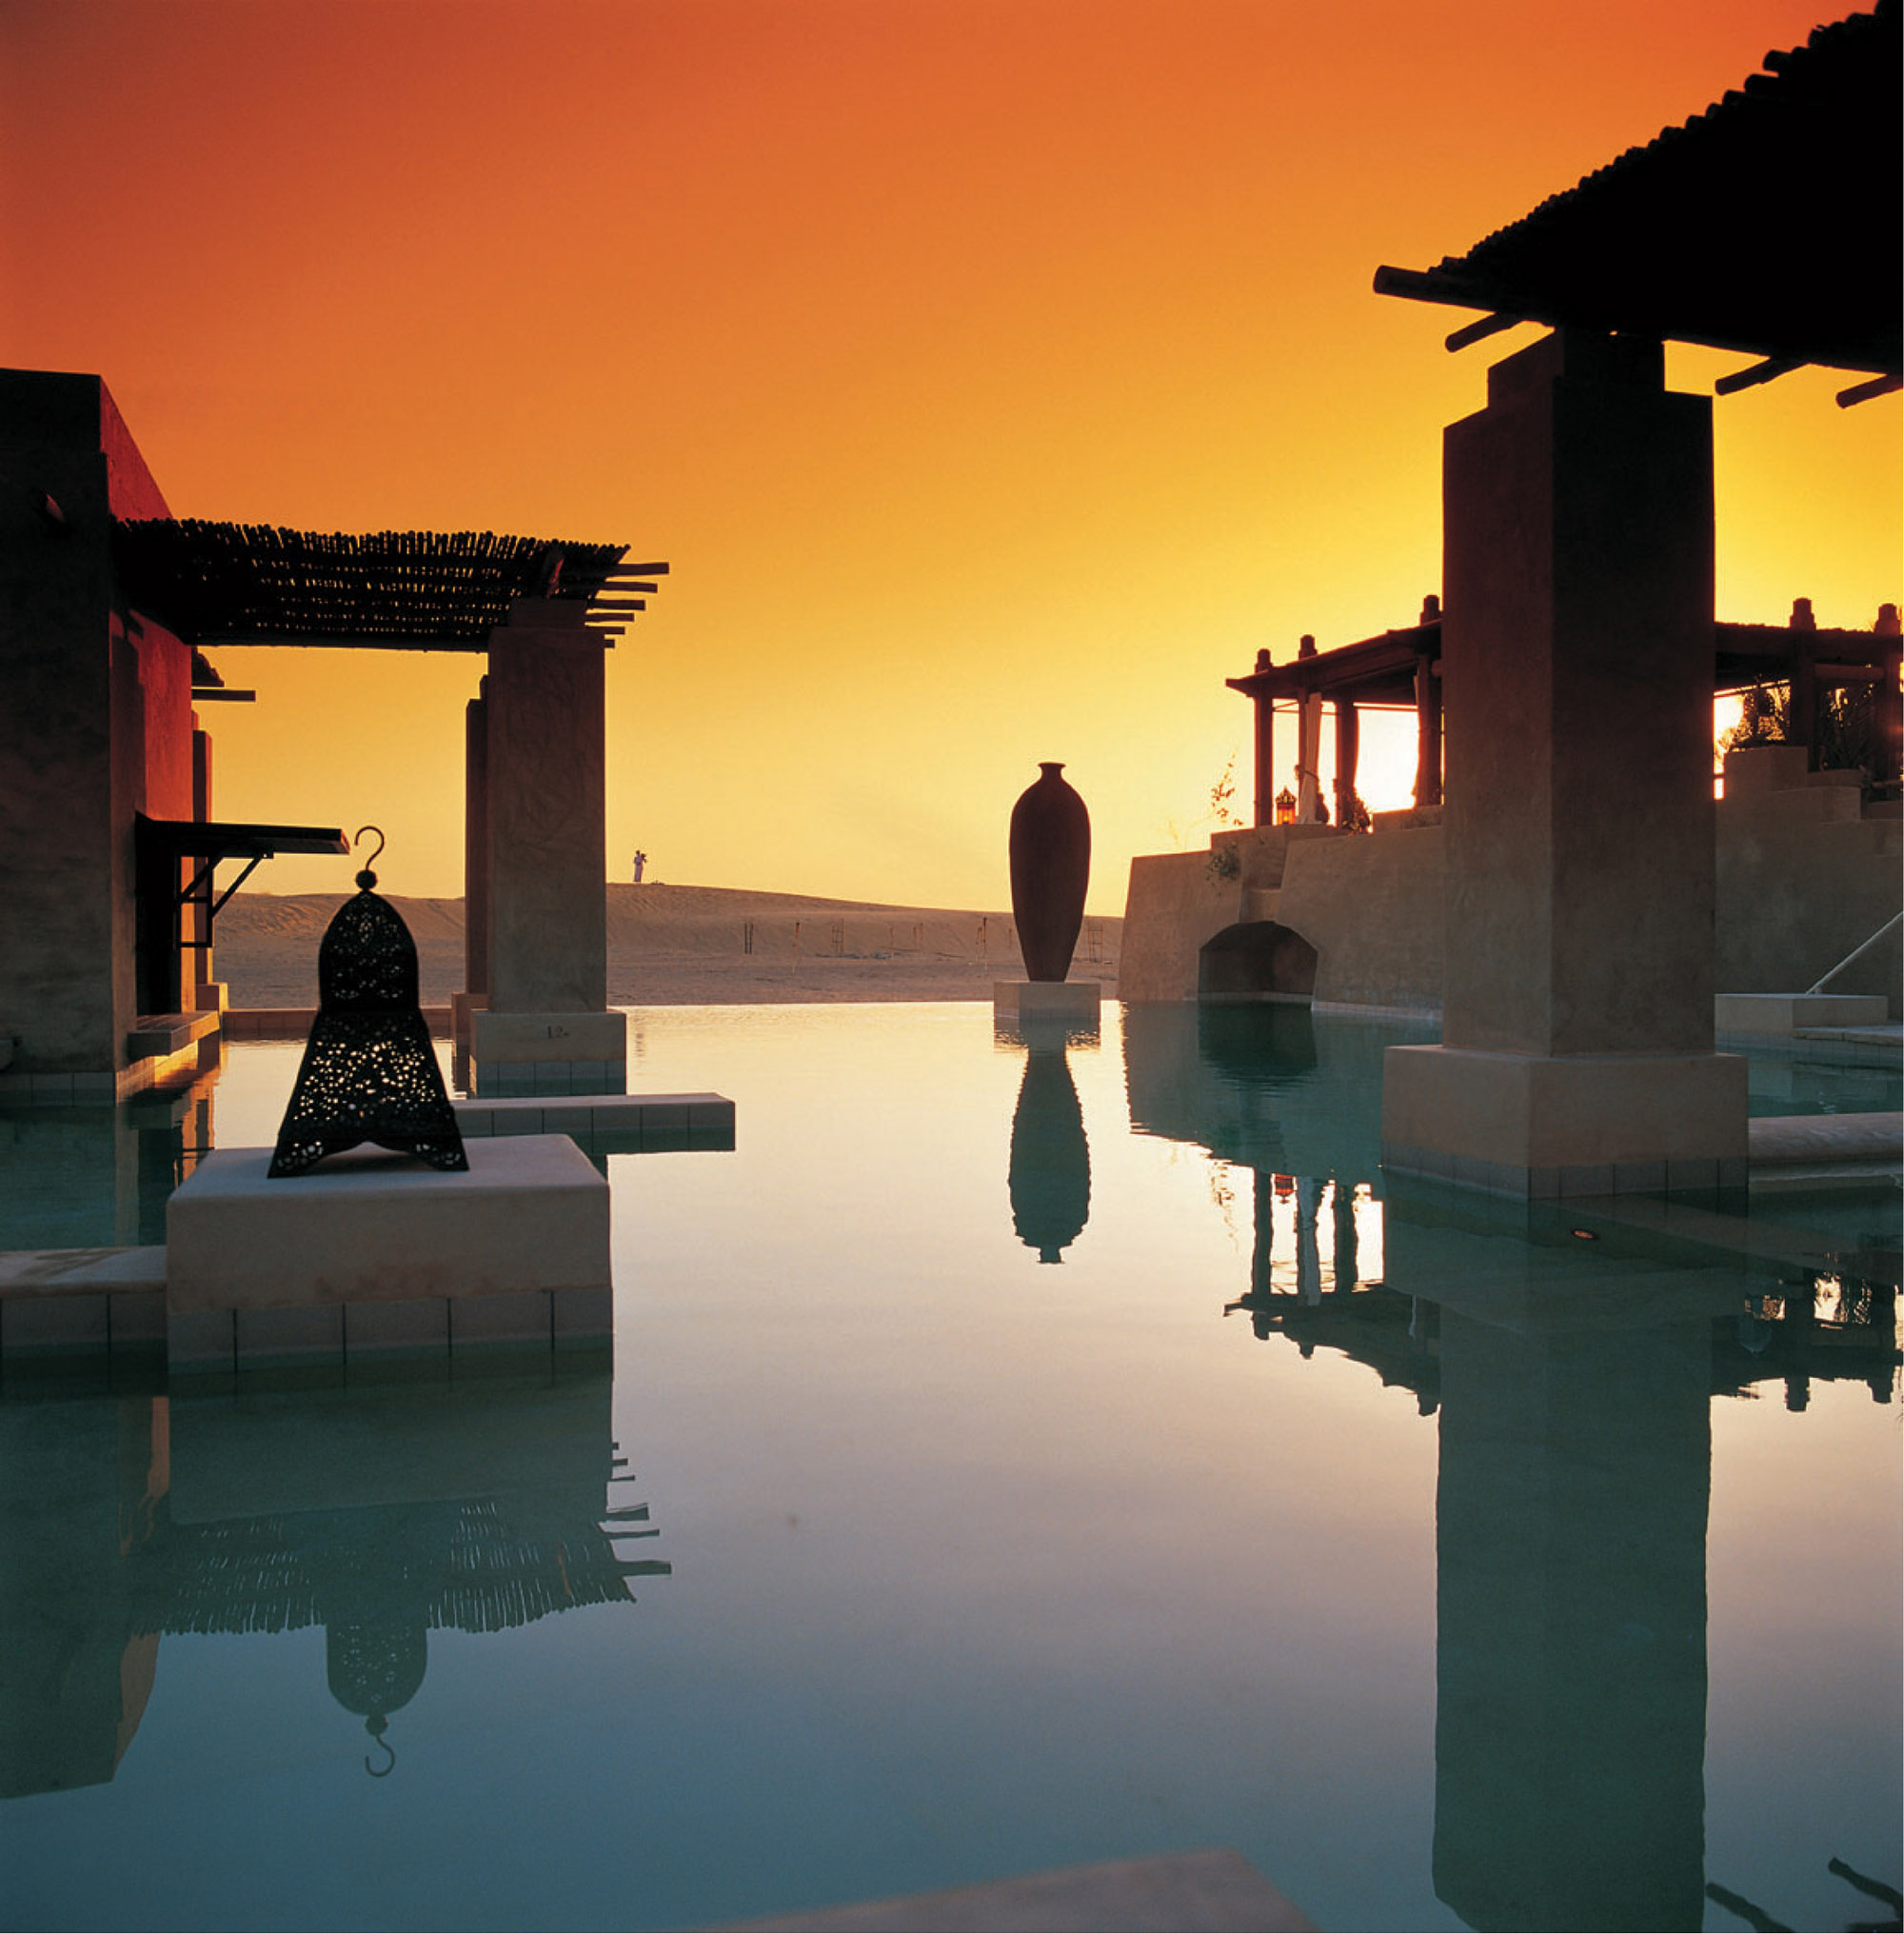 Meydan Hotels & Hospitality is ideally situated at the epicenter of one of the world's most exhilarating destinations